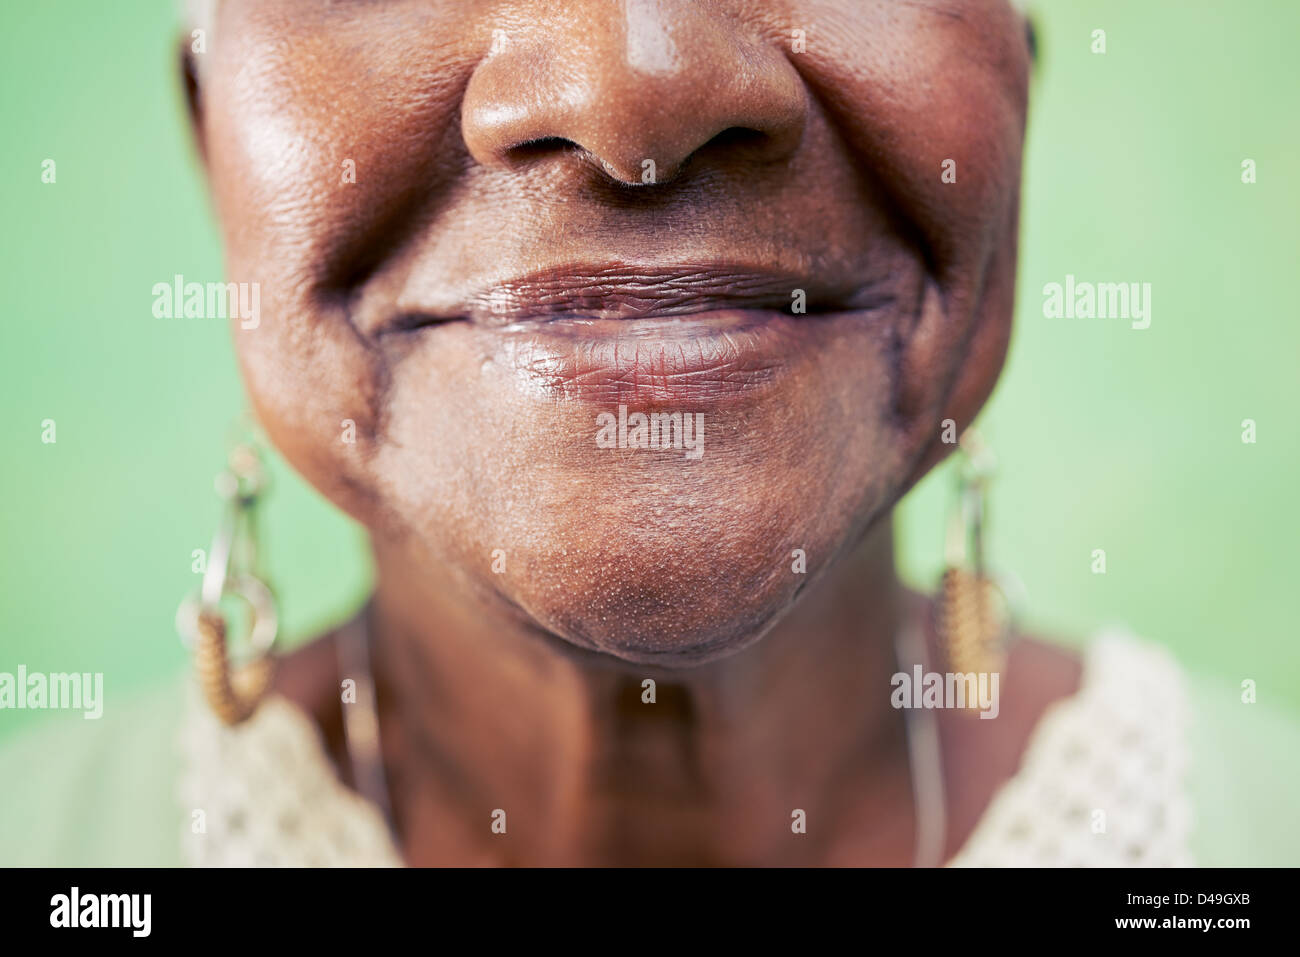 Old black woman portrait, close-up de l'oeil et du visage sur fond vert. Copy space Banque D'Images